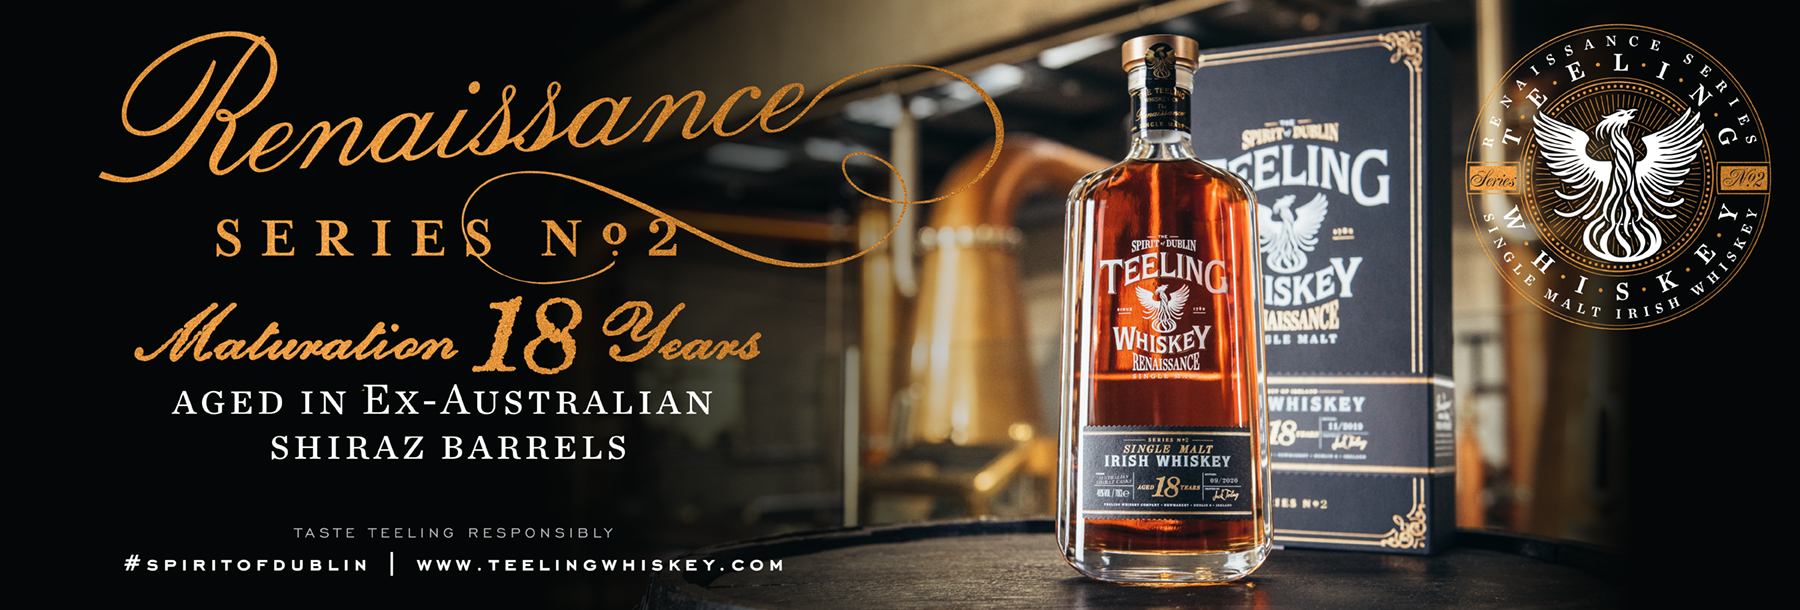 Teeling Renaissance 2 SIngle Malt Irish Whiskey Limited Edition